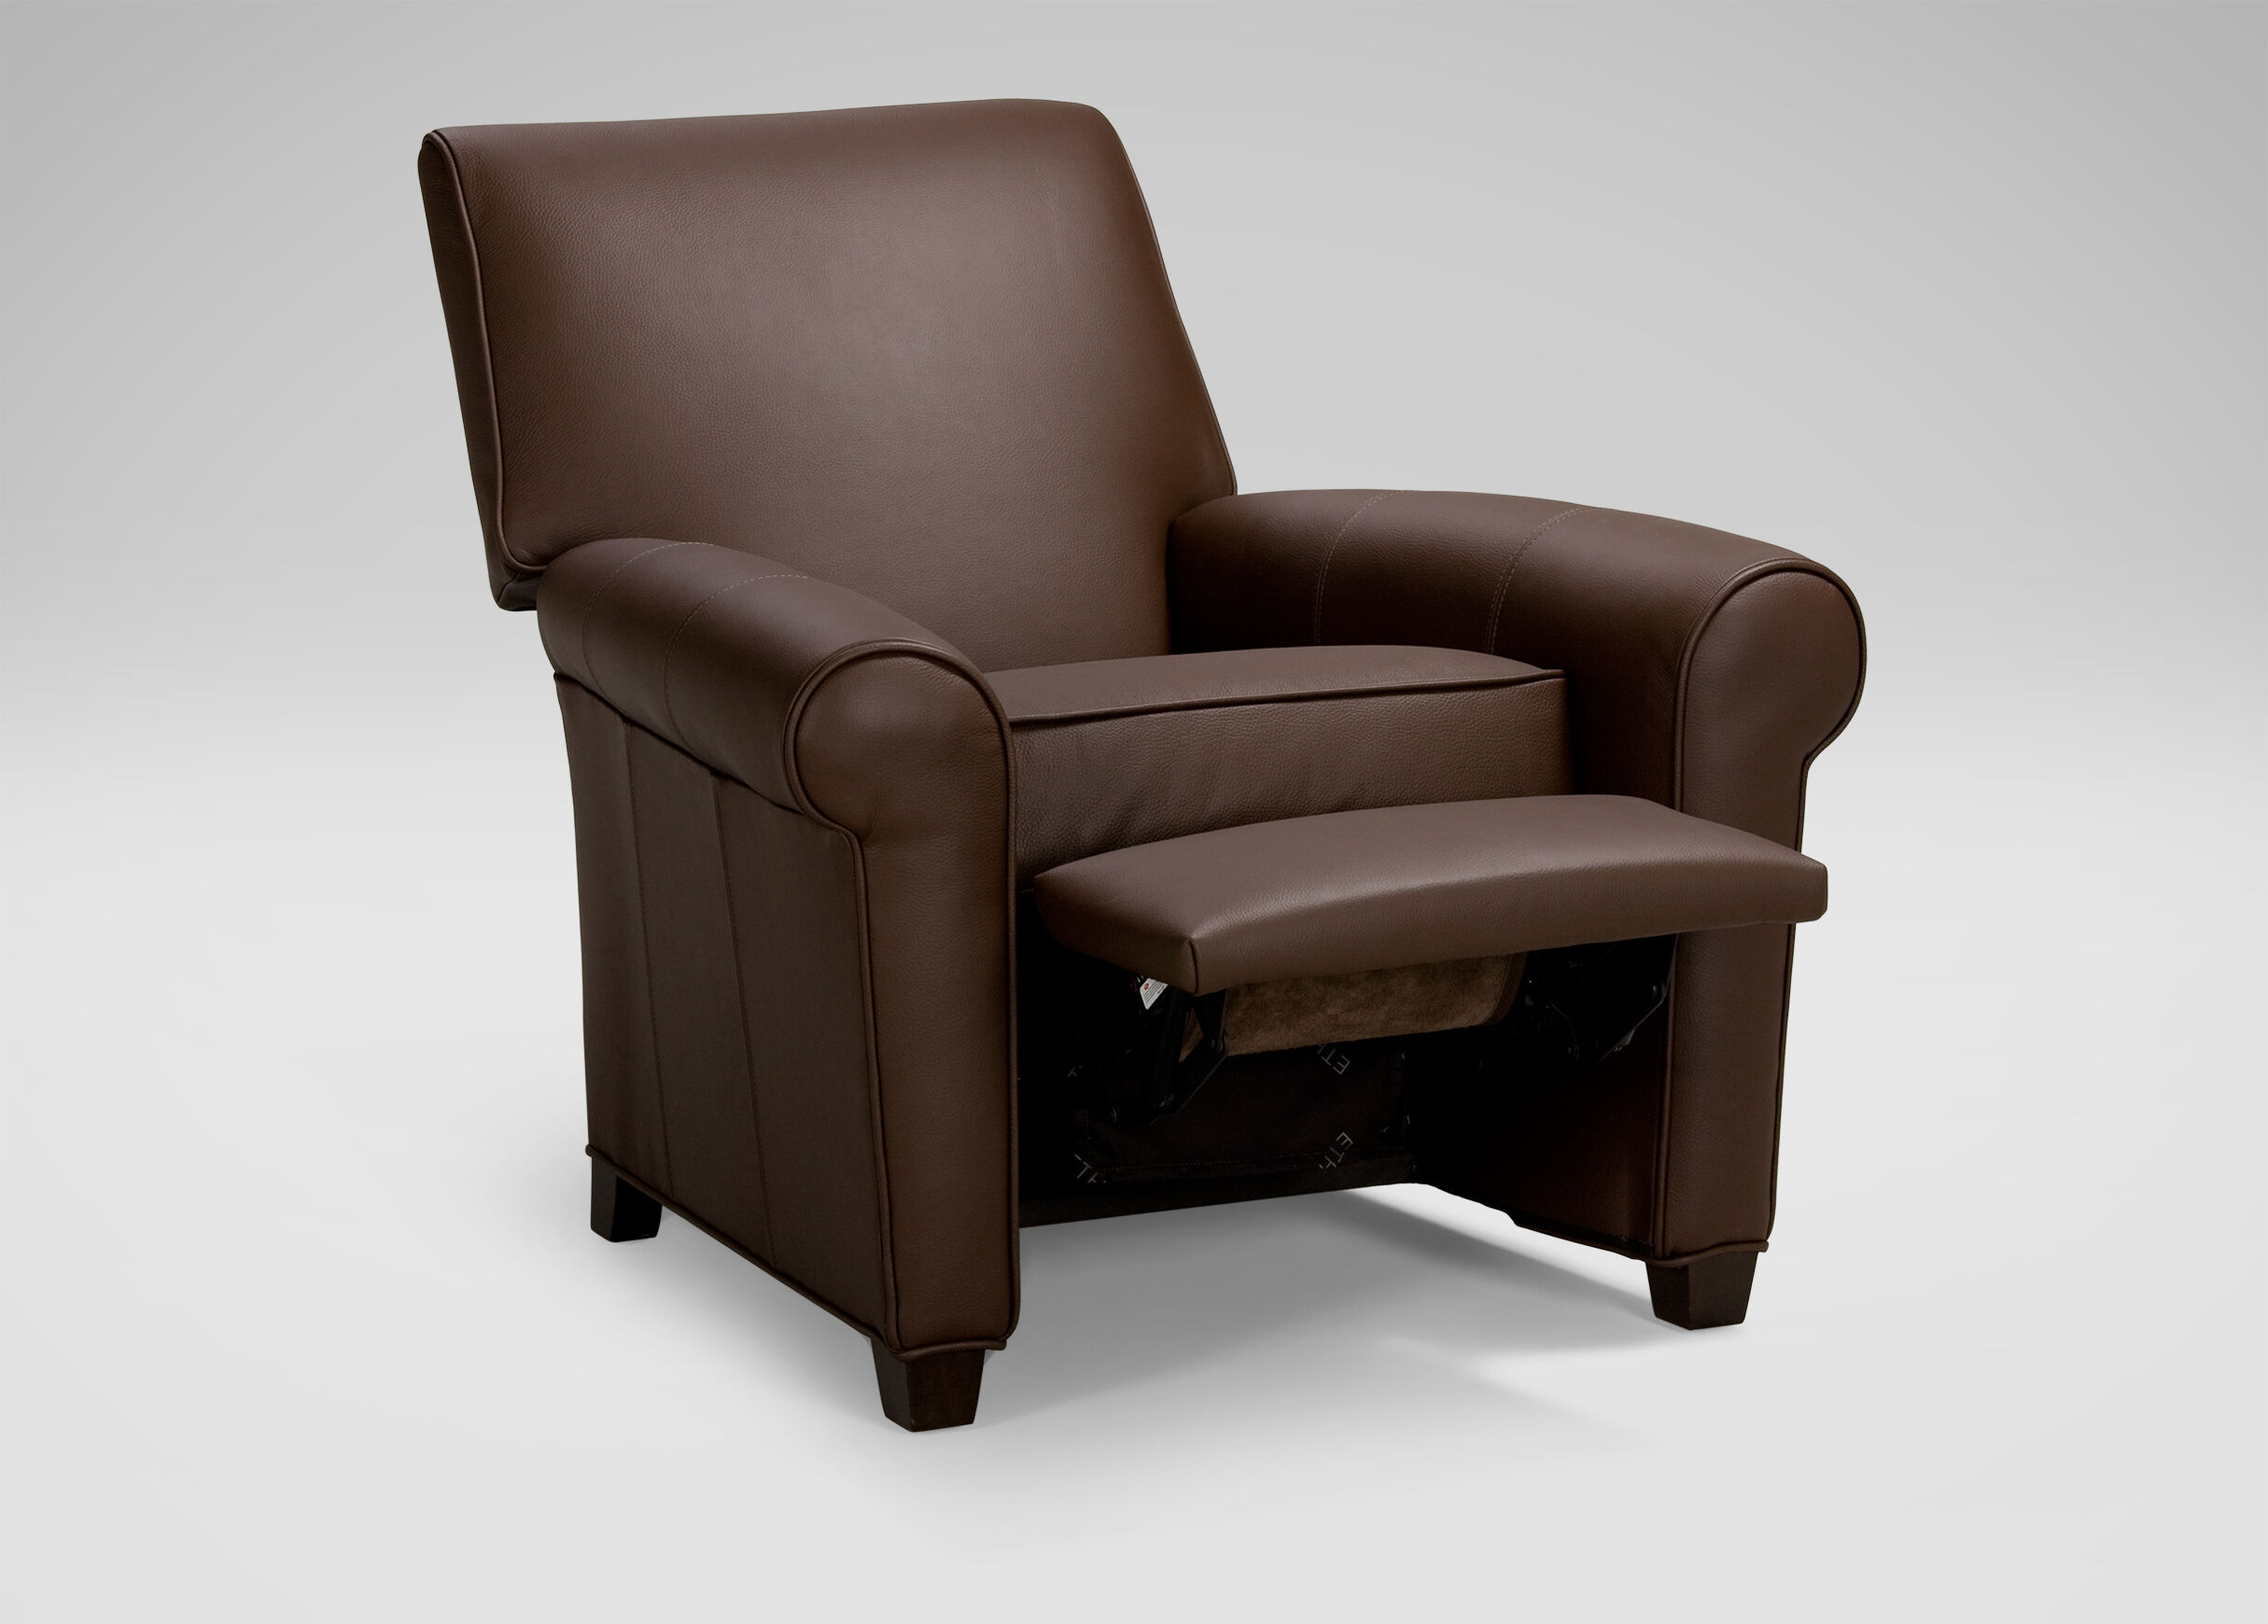 Bentley Leather Recliner   alt & Bentley Leather Recliner | Recliners islam-shia.org